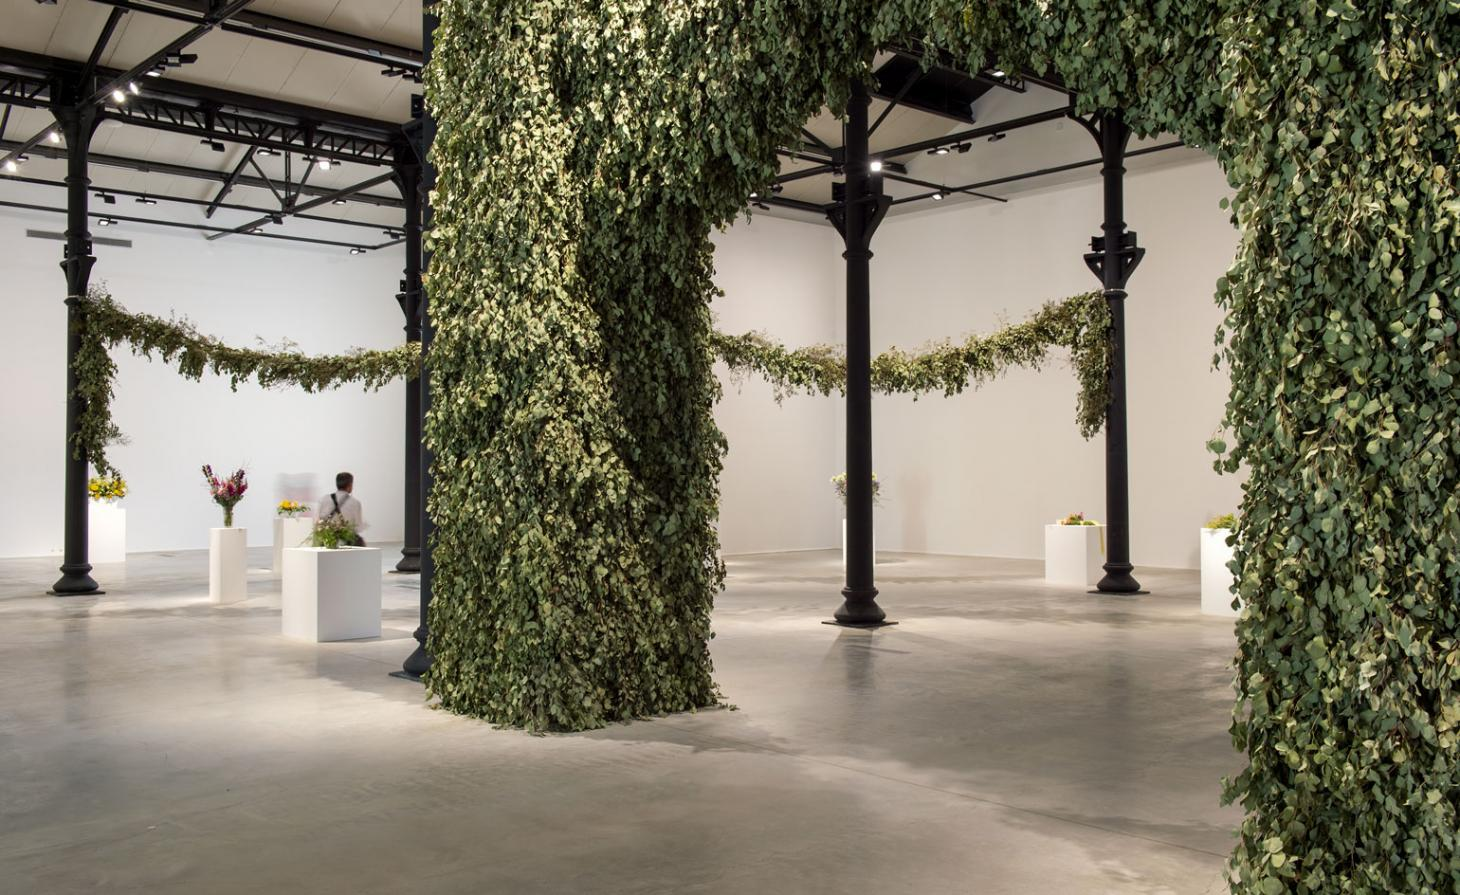 An exhibiton space filled with green plants